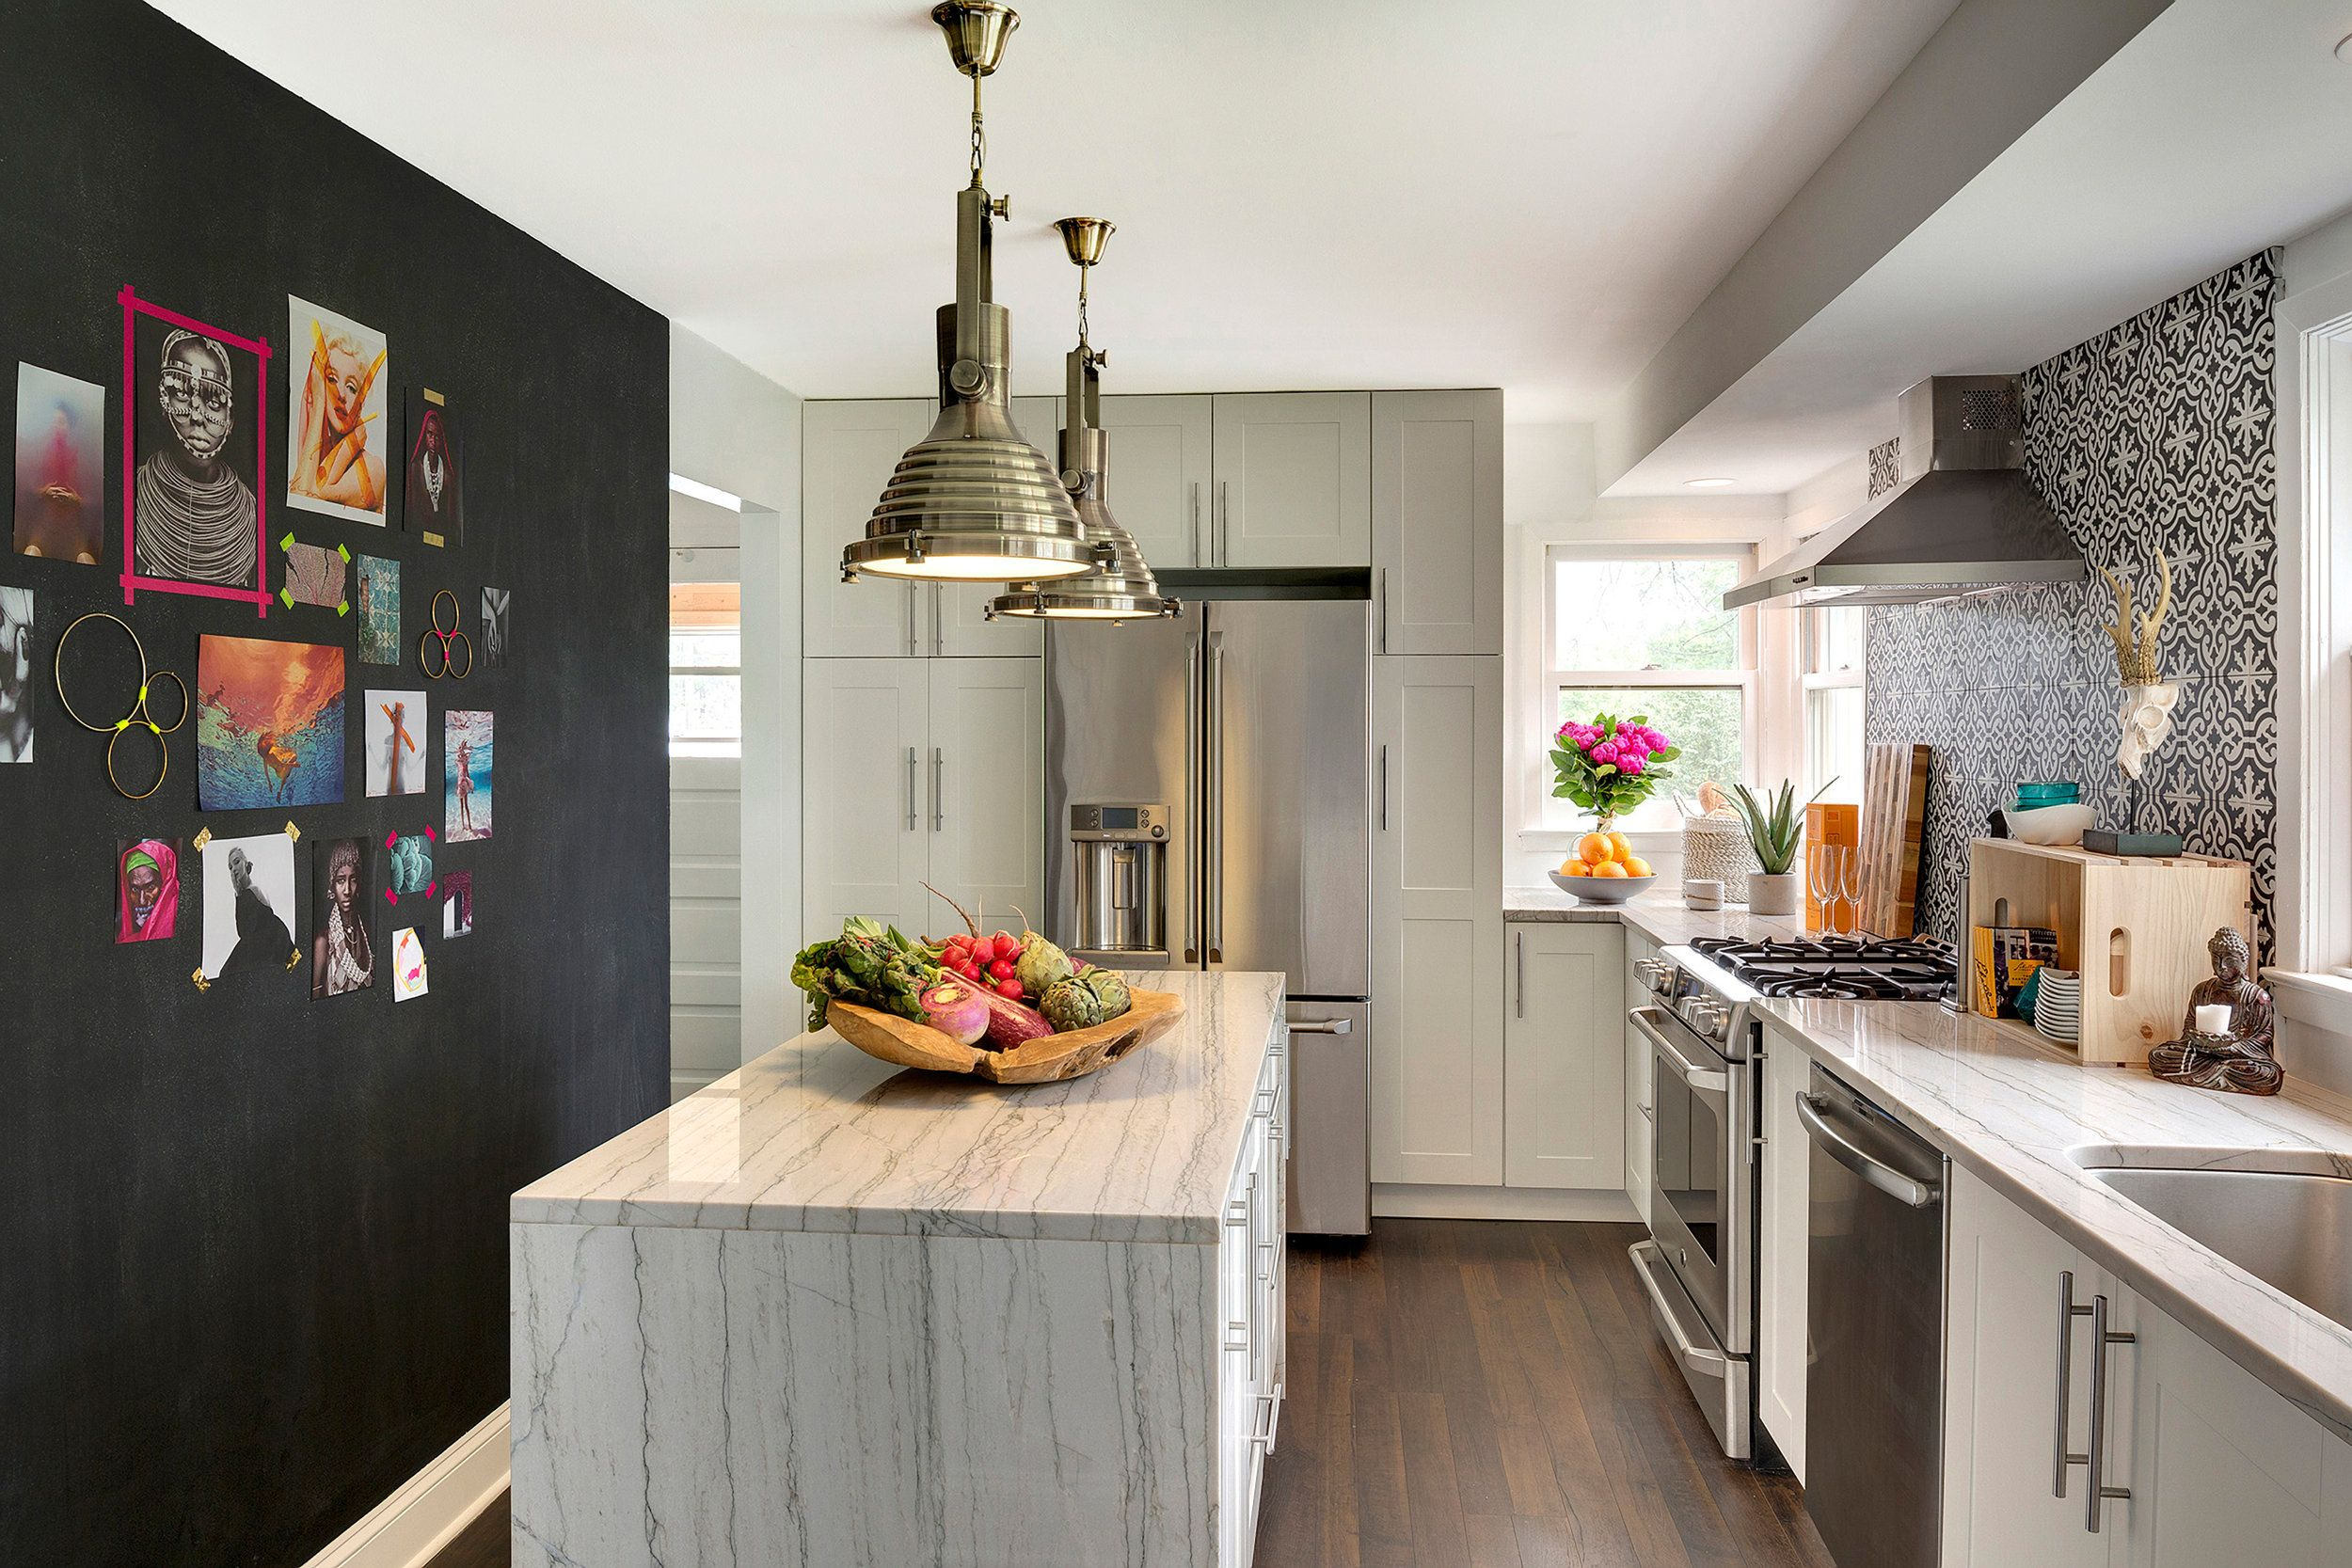 Minneapolis MN Interior Design Firm Eclectic New Bohemian